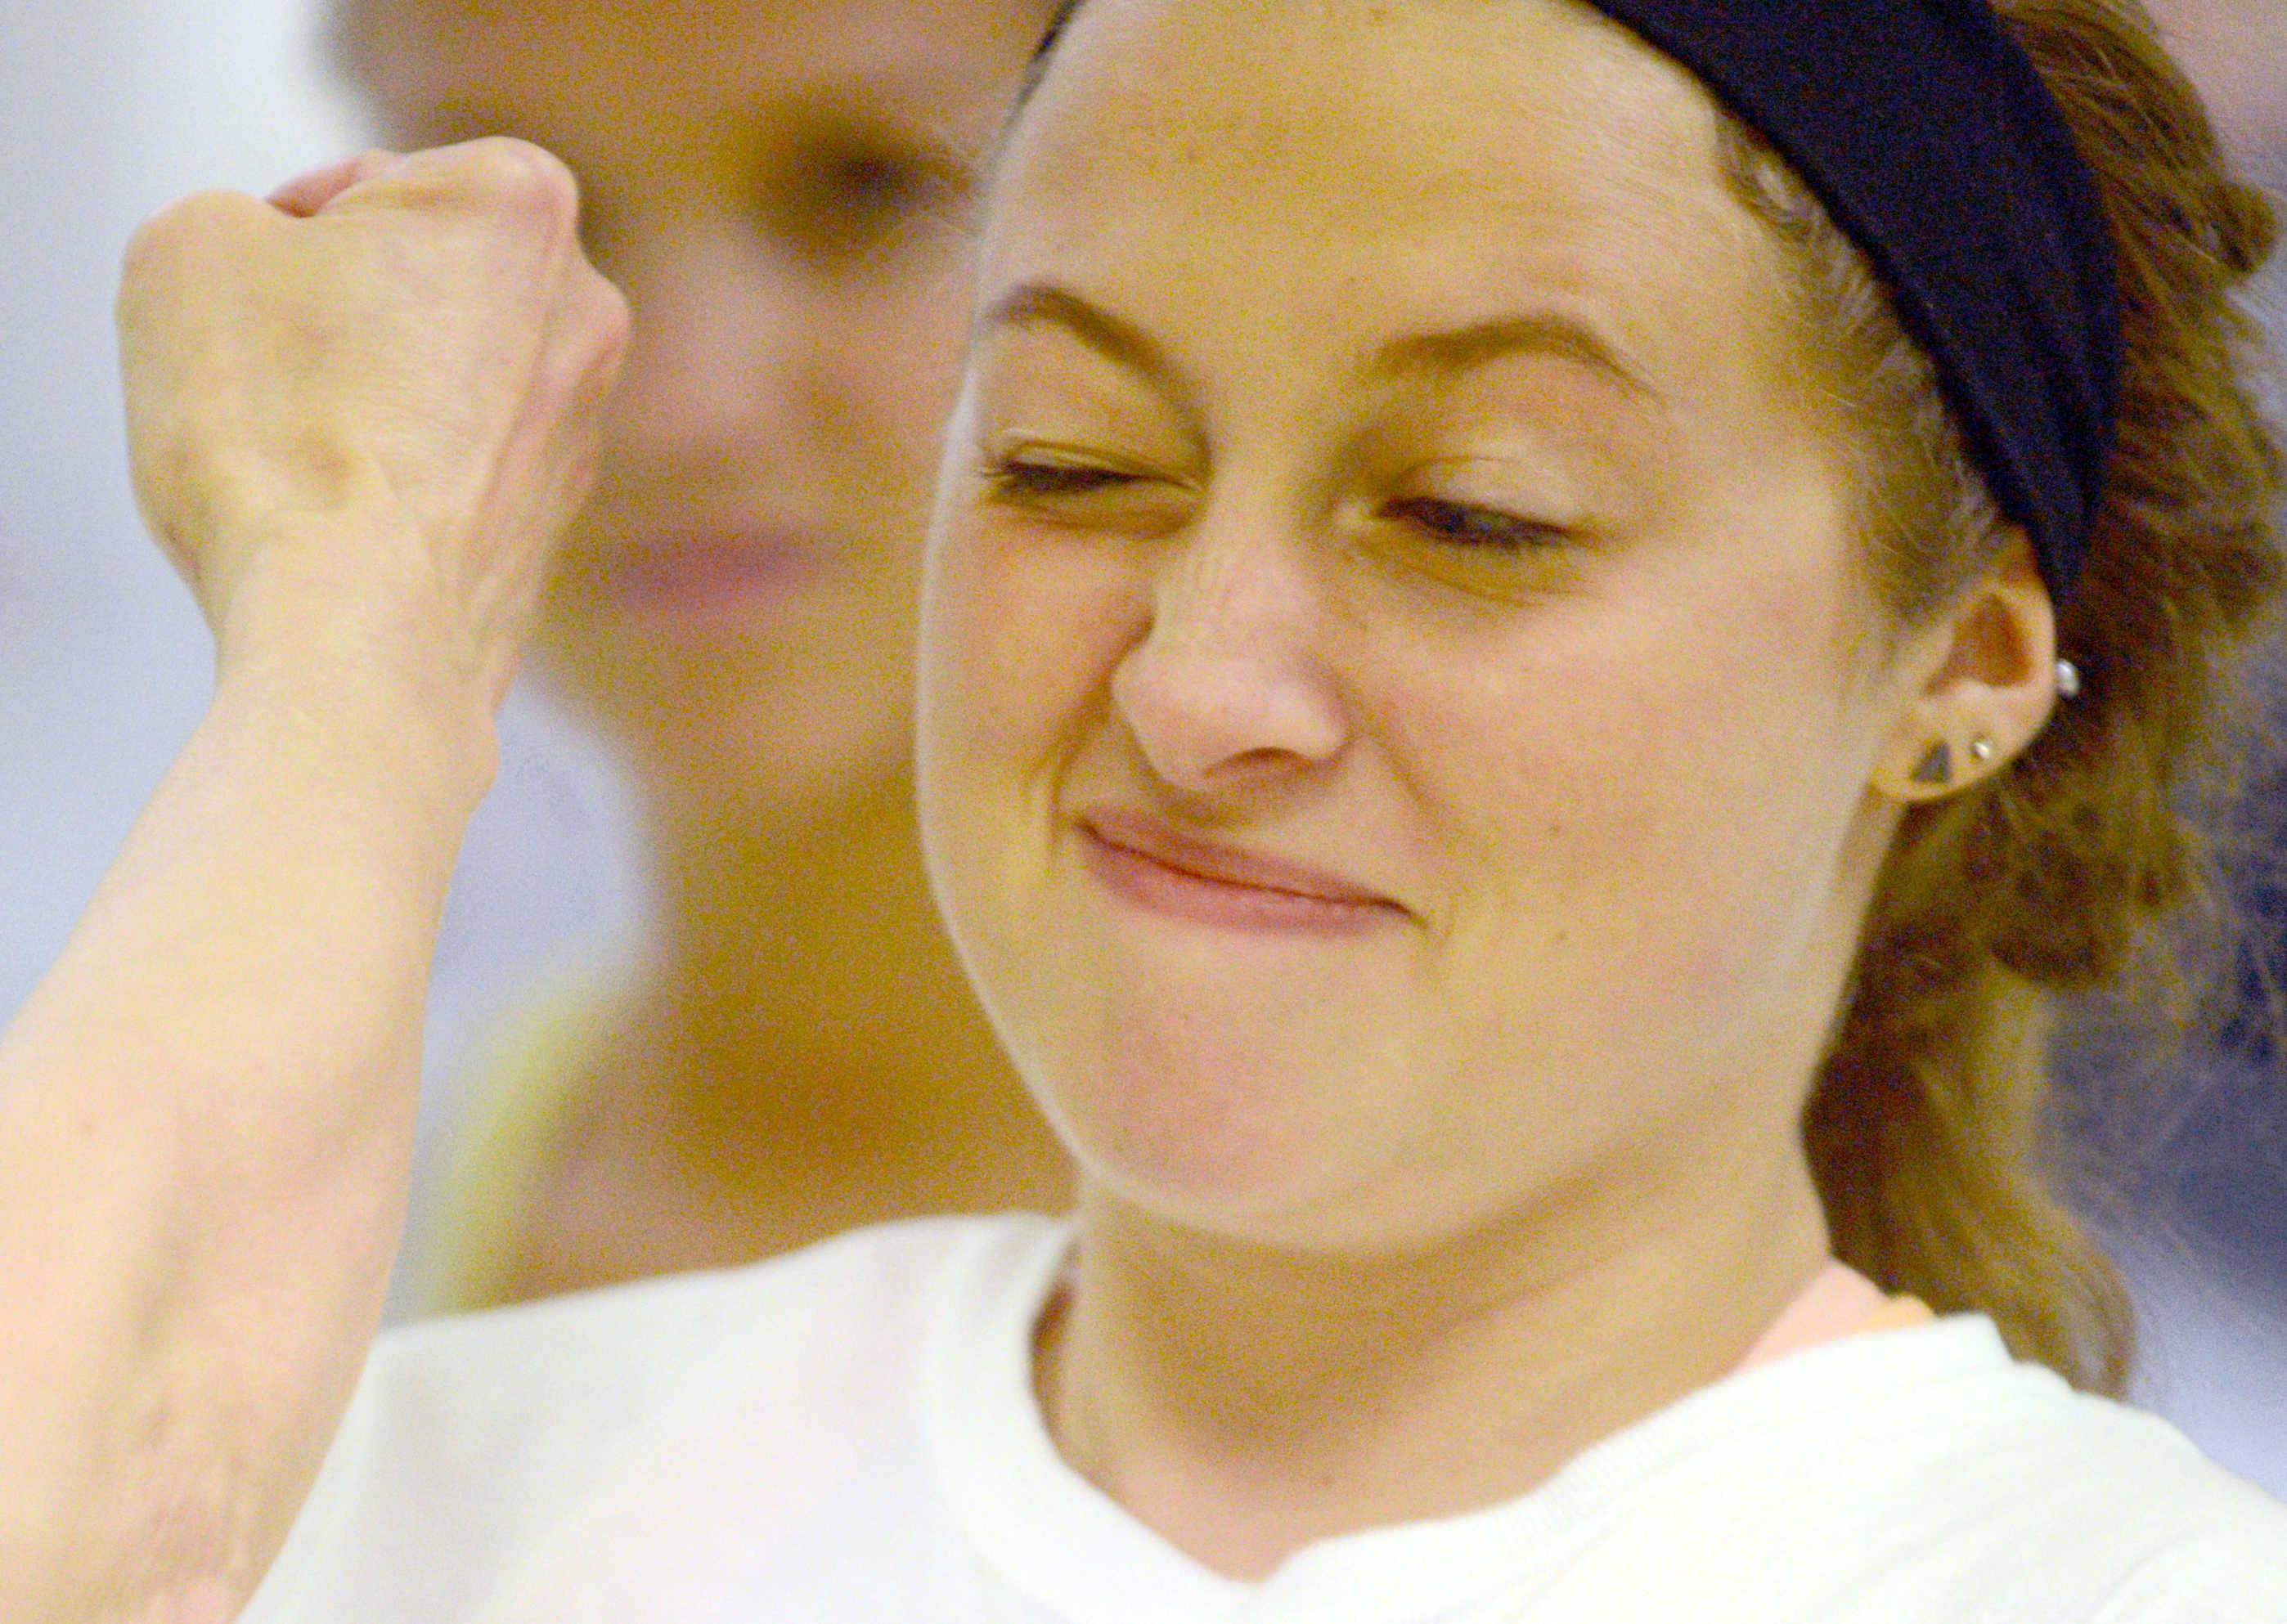 Taylor Delapa of Palatine winces at a punch during a women's self-defense class at J.P. Wood Martial Arts America.